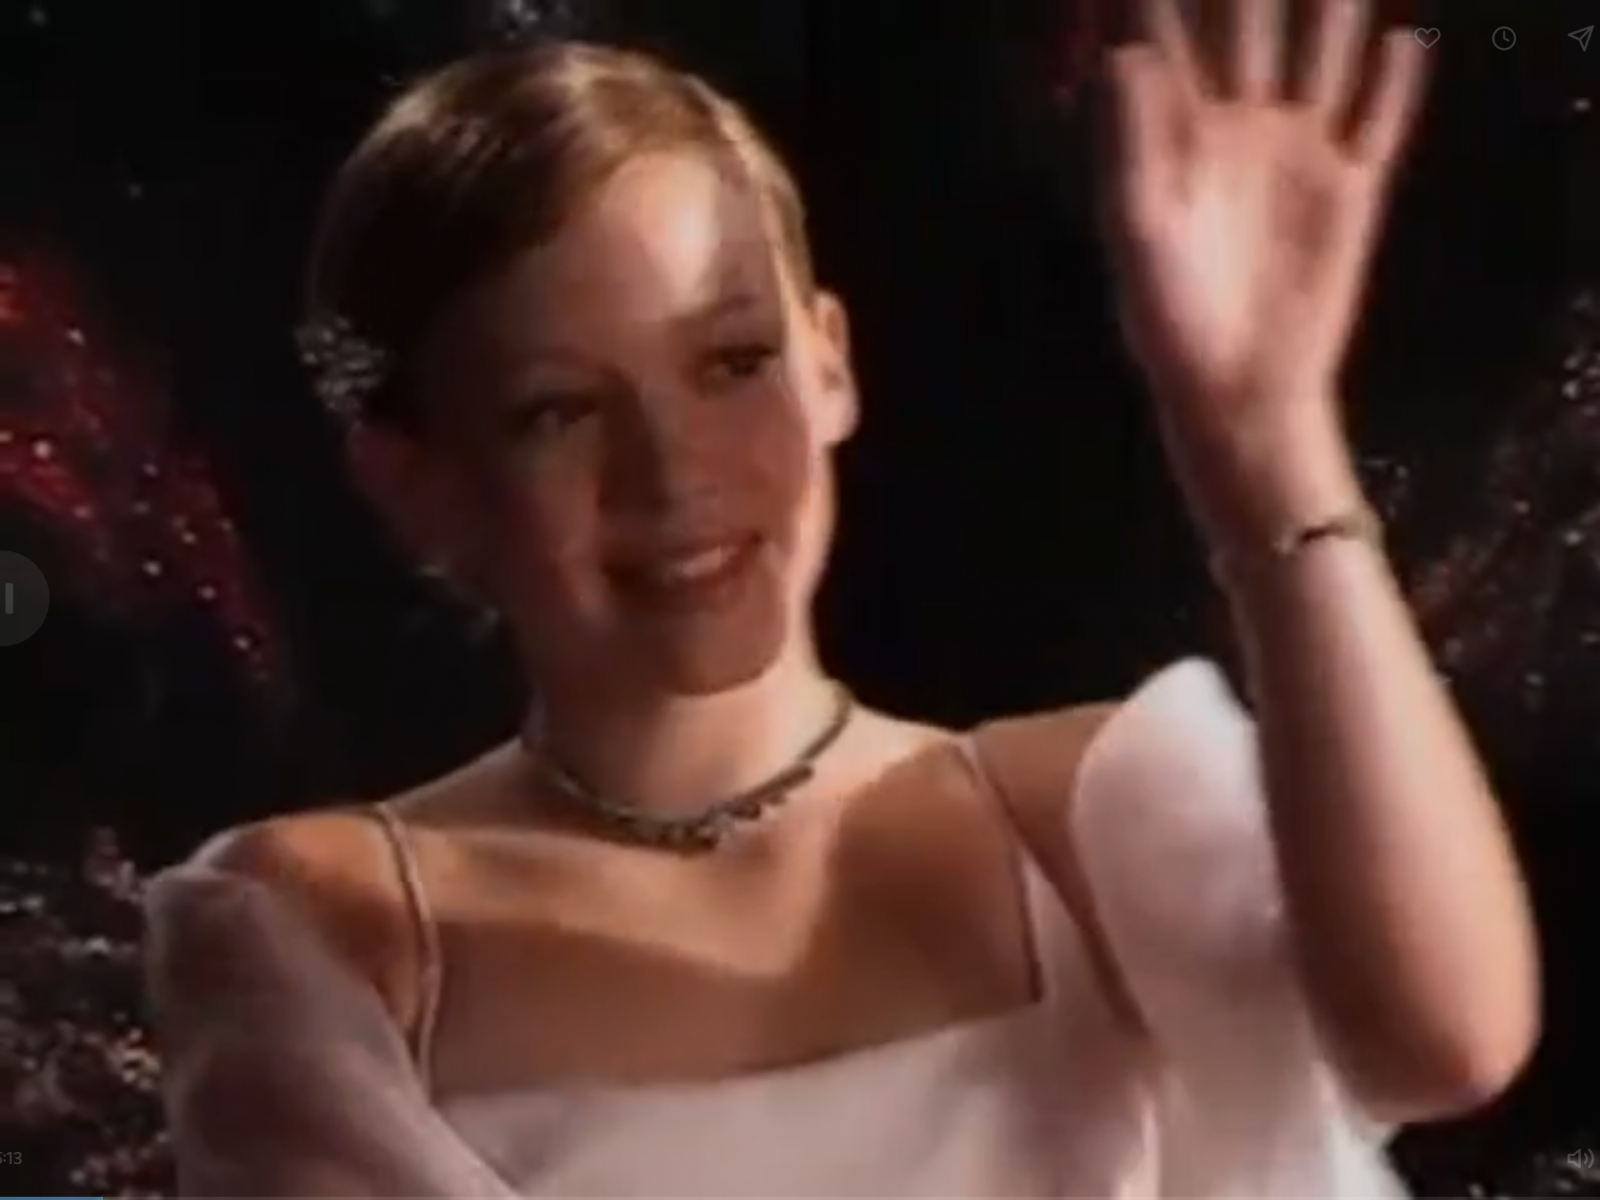 Lizzie Imagines a Gwyneth Paltrow at the Oscars Look